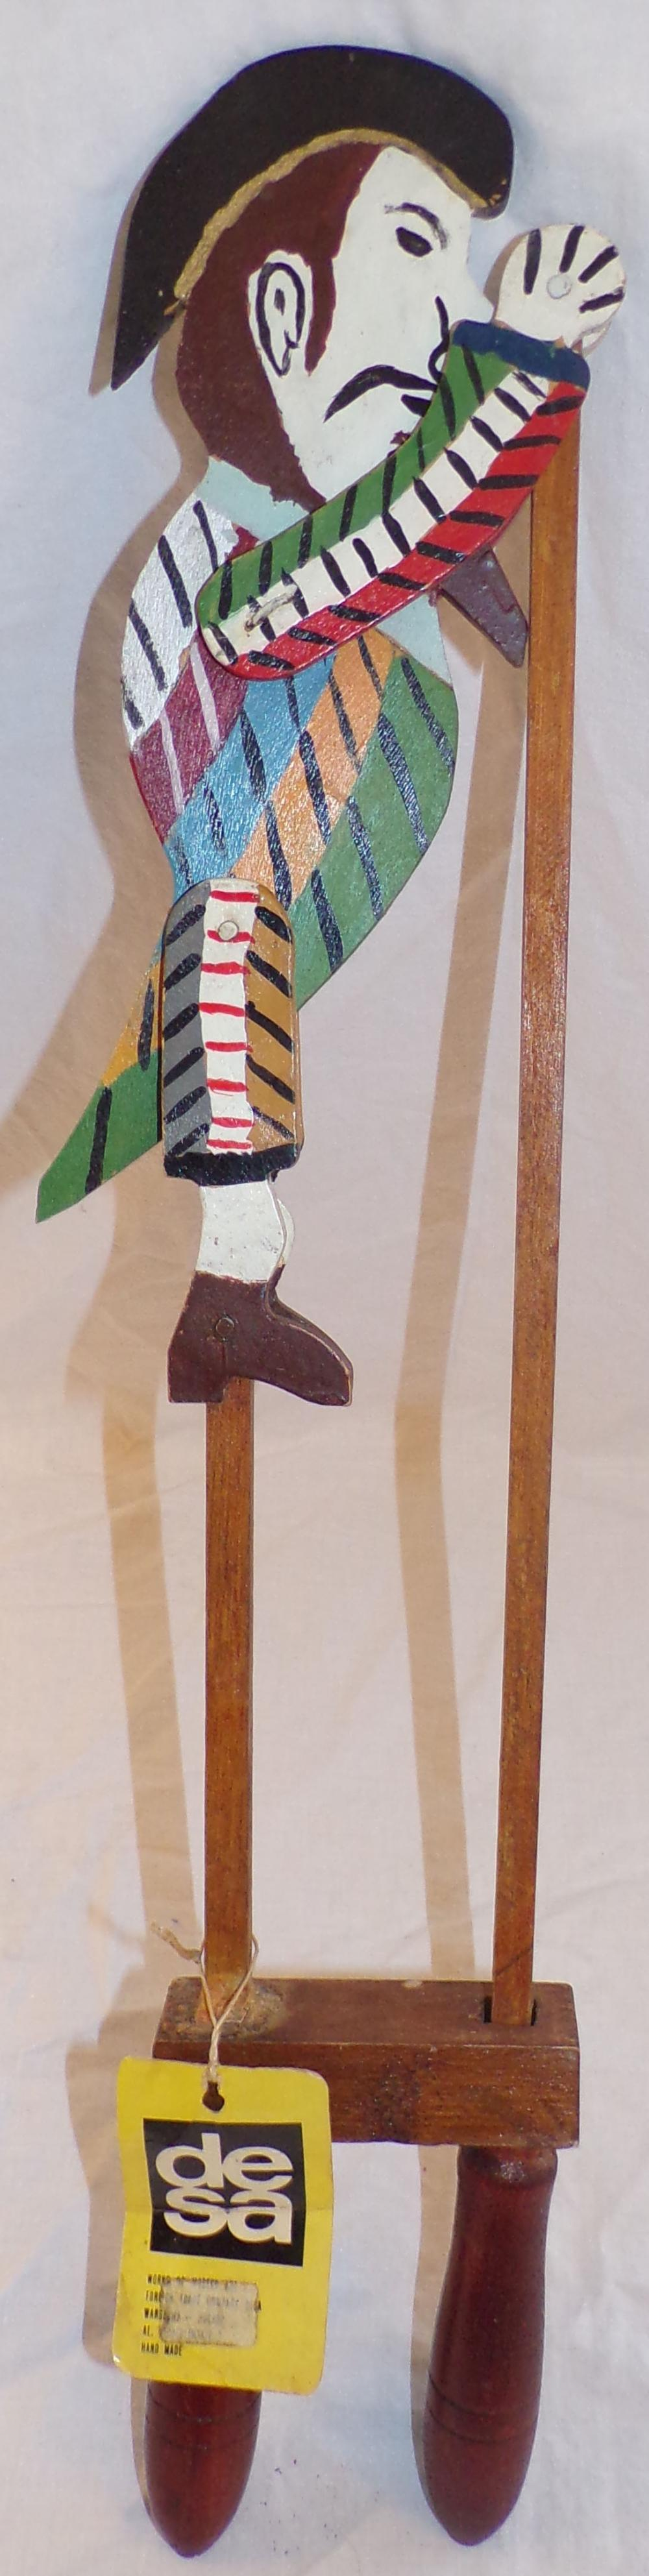 "Handpainted and handcrafted wooden toy, jointed figure of a bearded man with 2 handles adjusting his  position from standing to bending, paper tag attached reading desa, Made In Poland, 22 ½"" L x 4"" W"